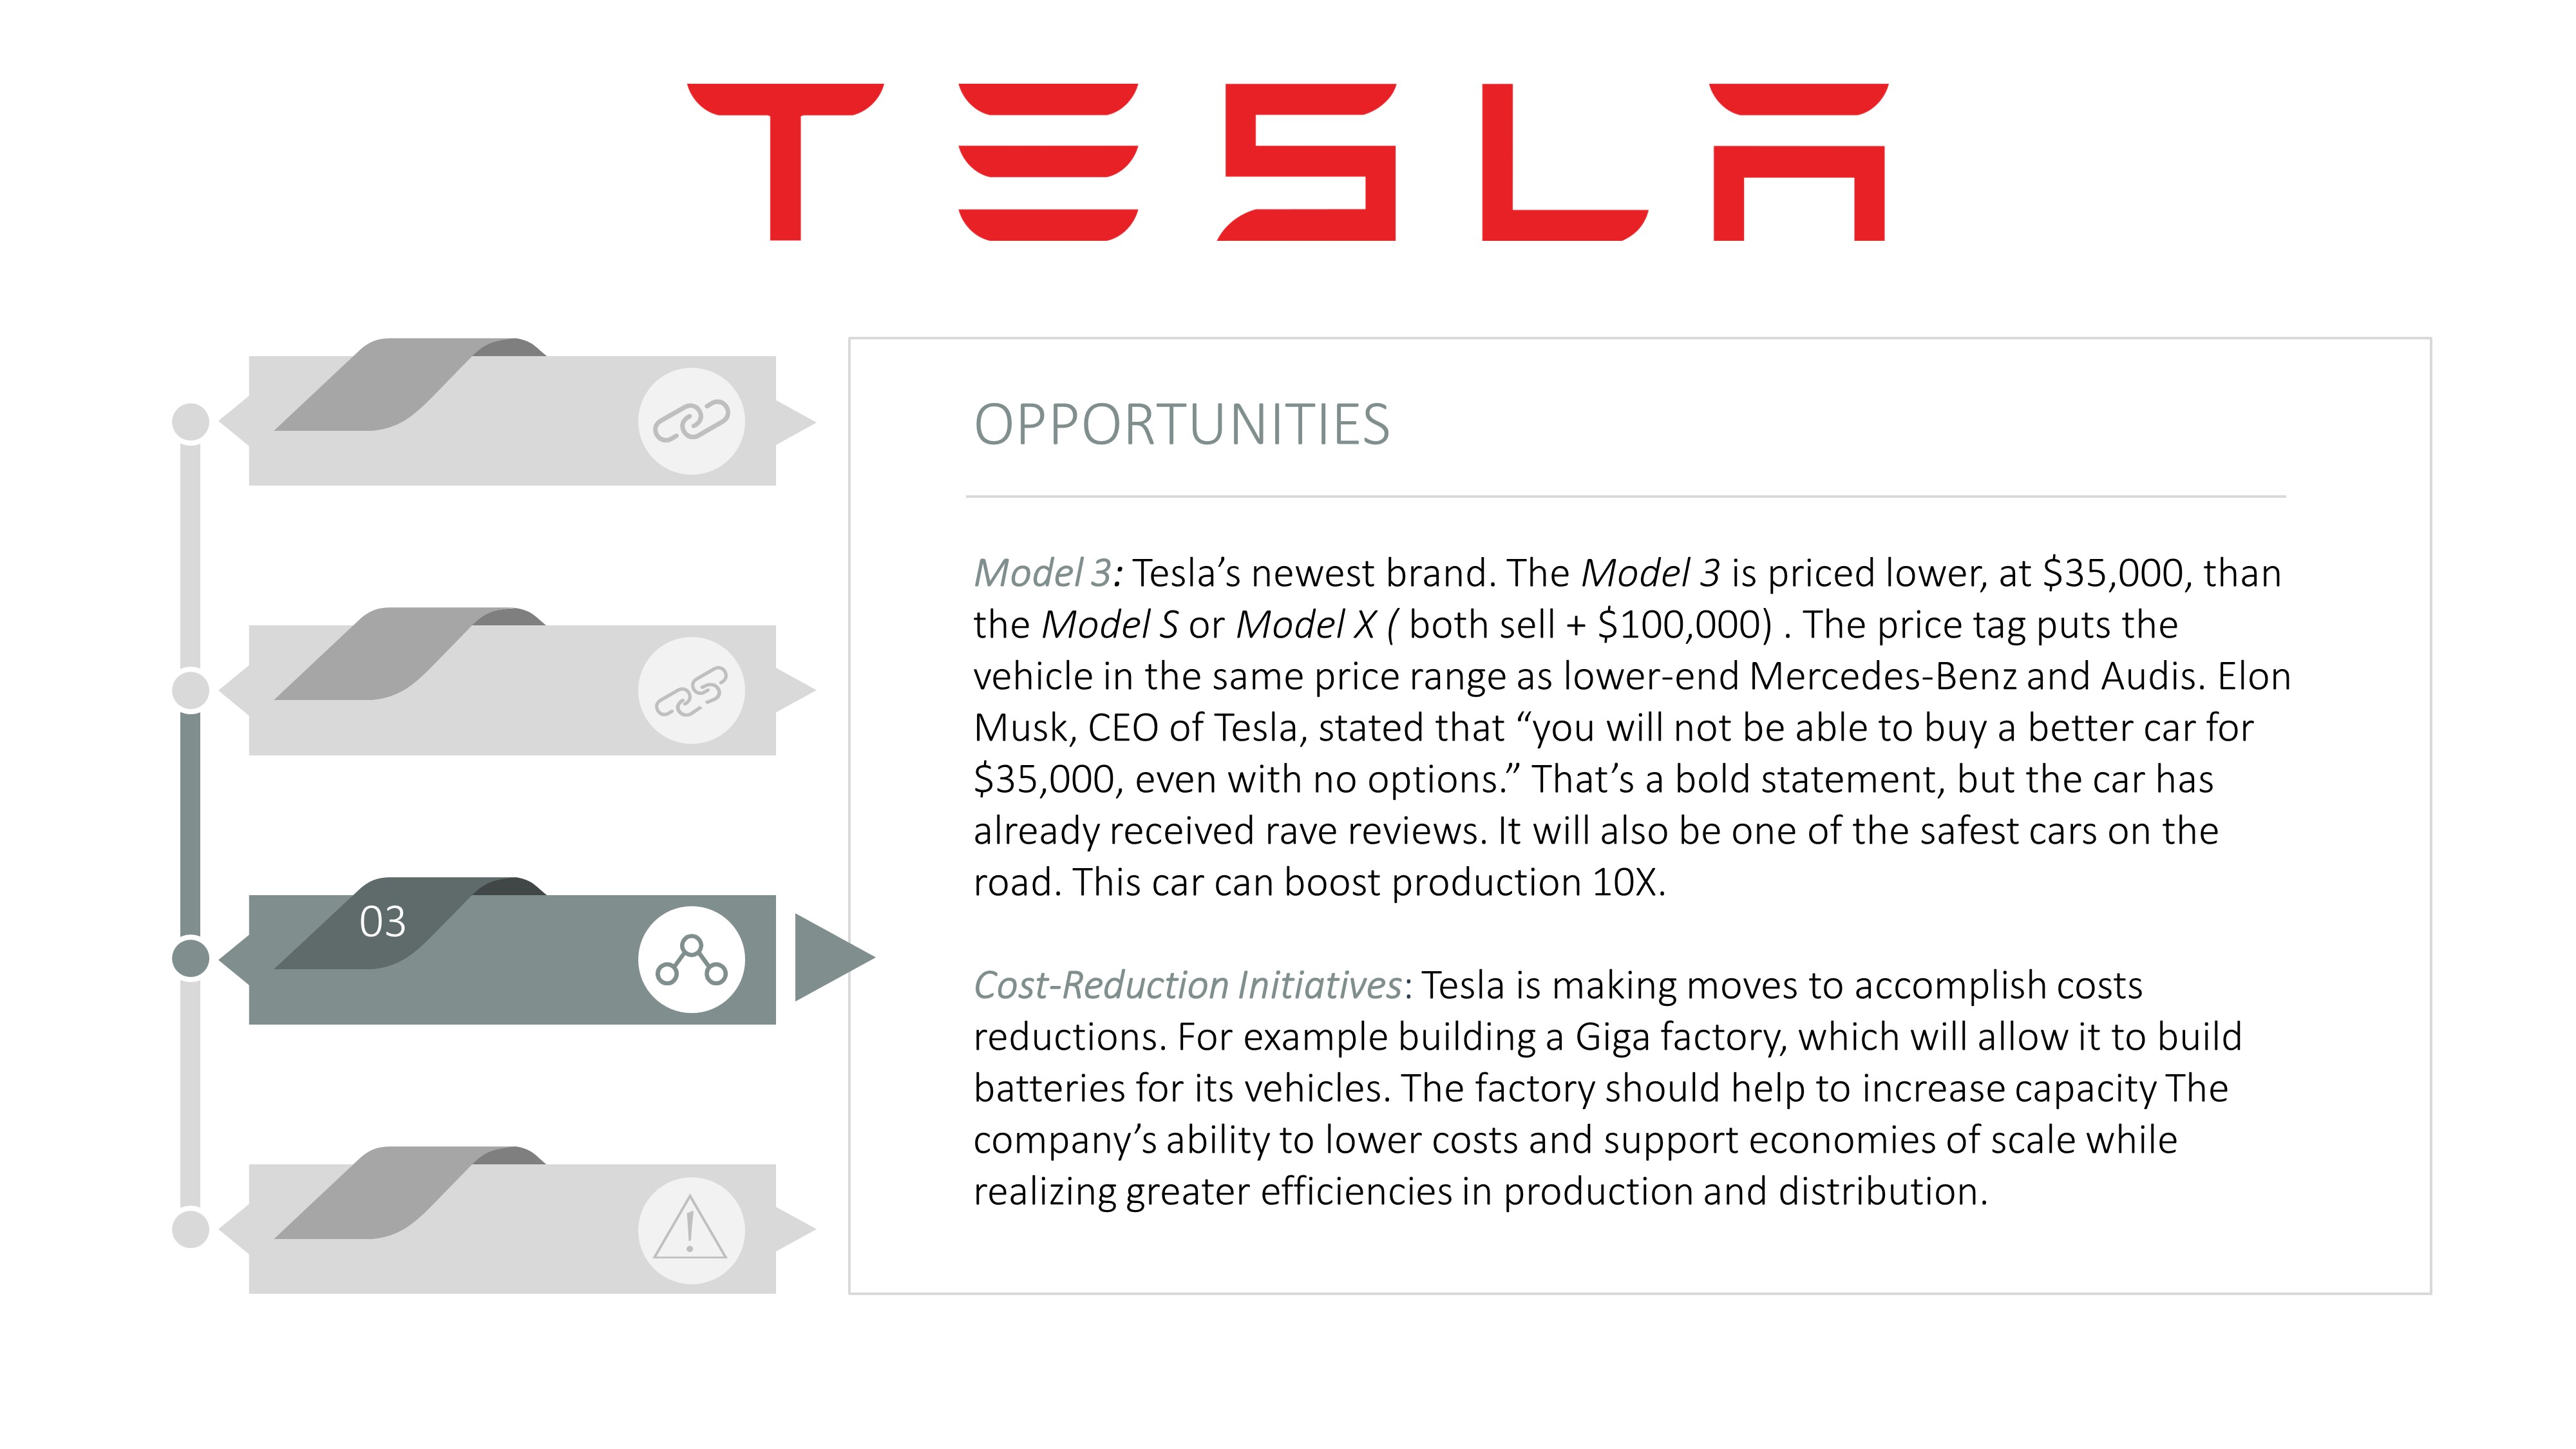 Opportunities for Tesla SWOT Analysis